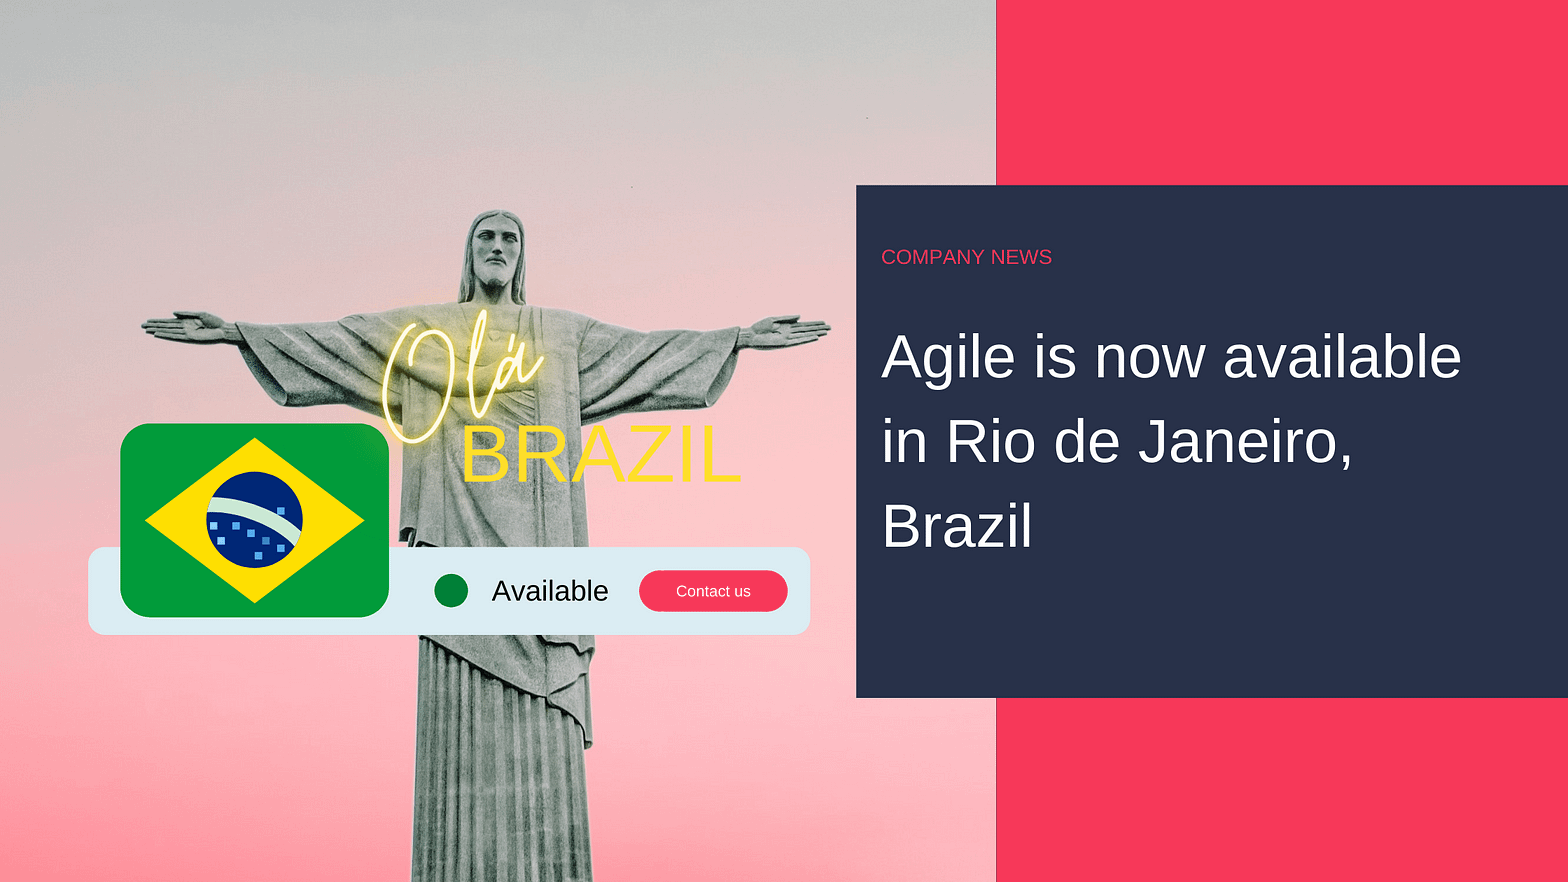 Agile is now available in Brazil